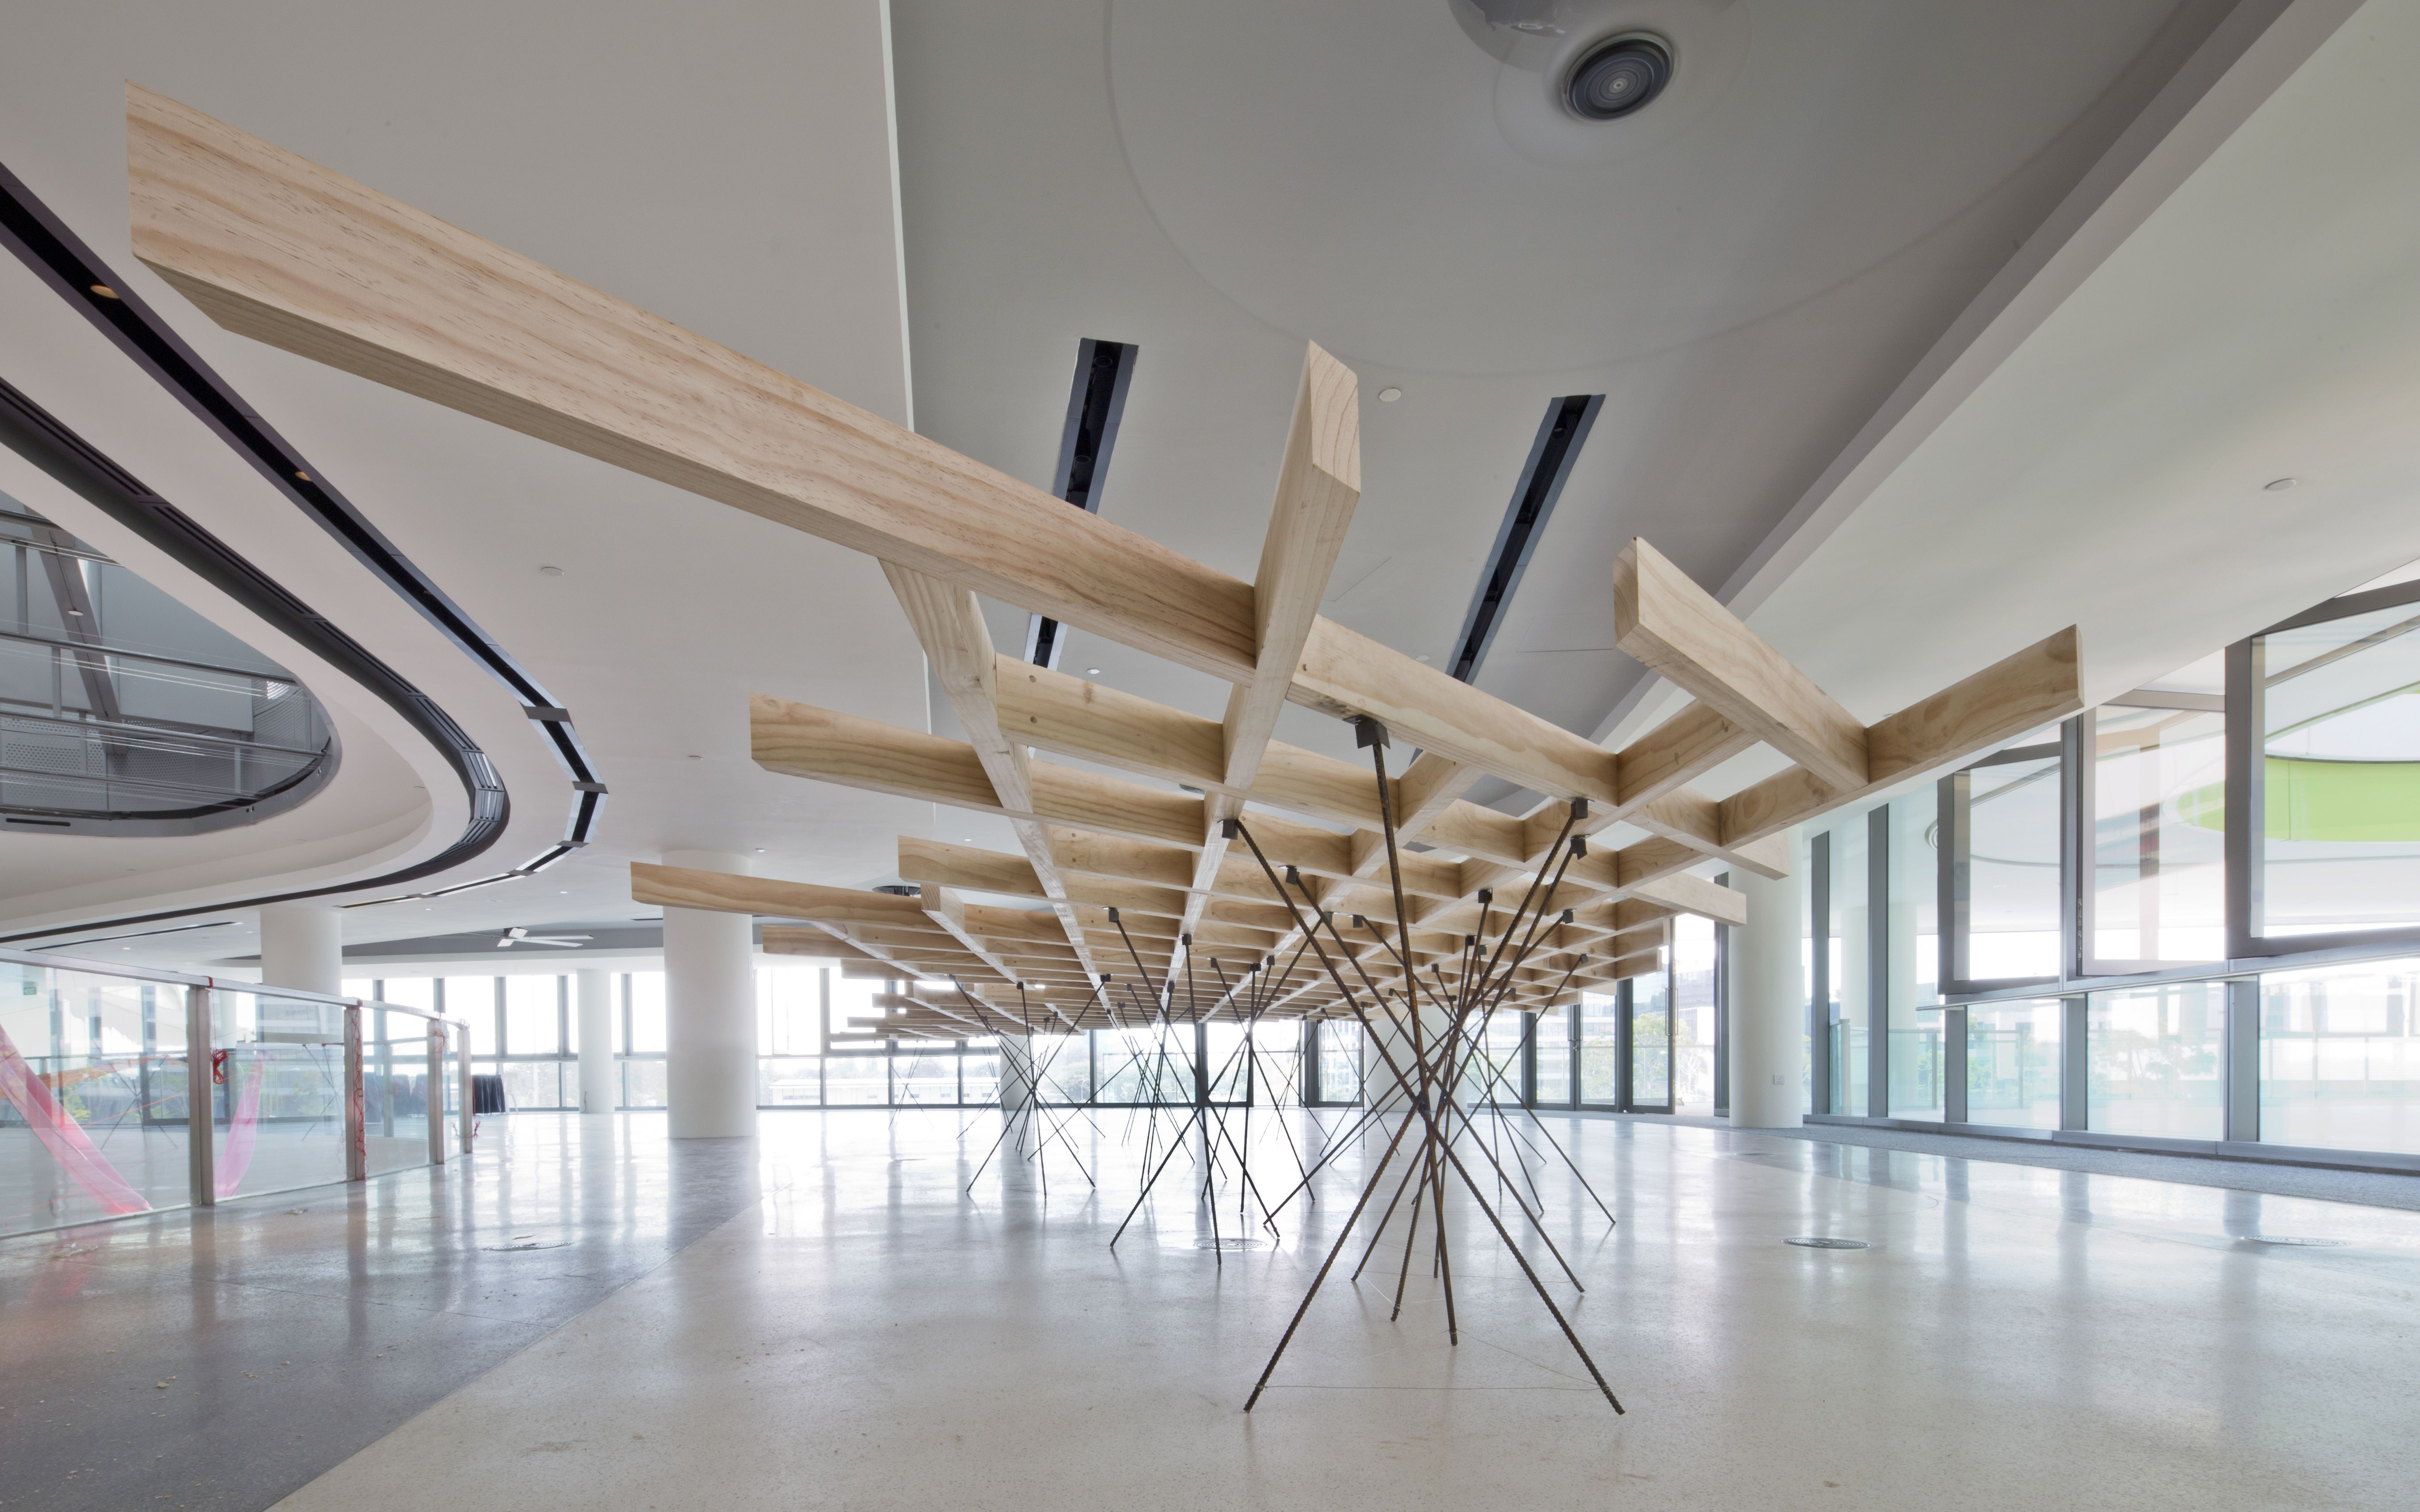 Flying wooden cloud, standing on thin 10 mm rebars. #architecture #exhibition #sutd #studs #wood #raw #rebars